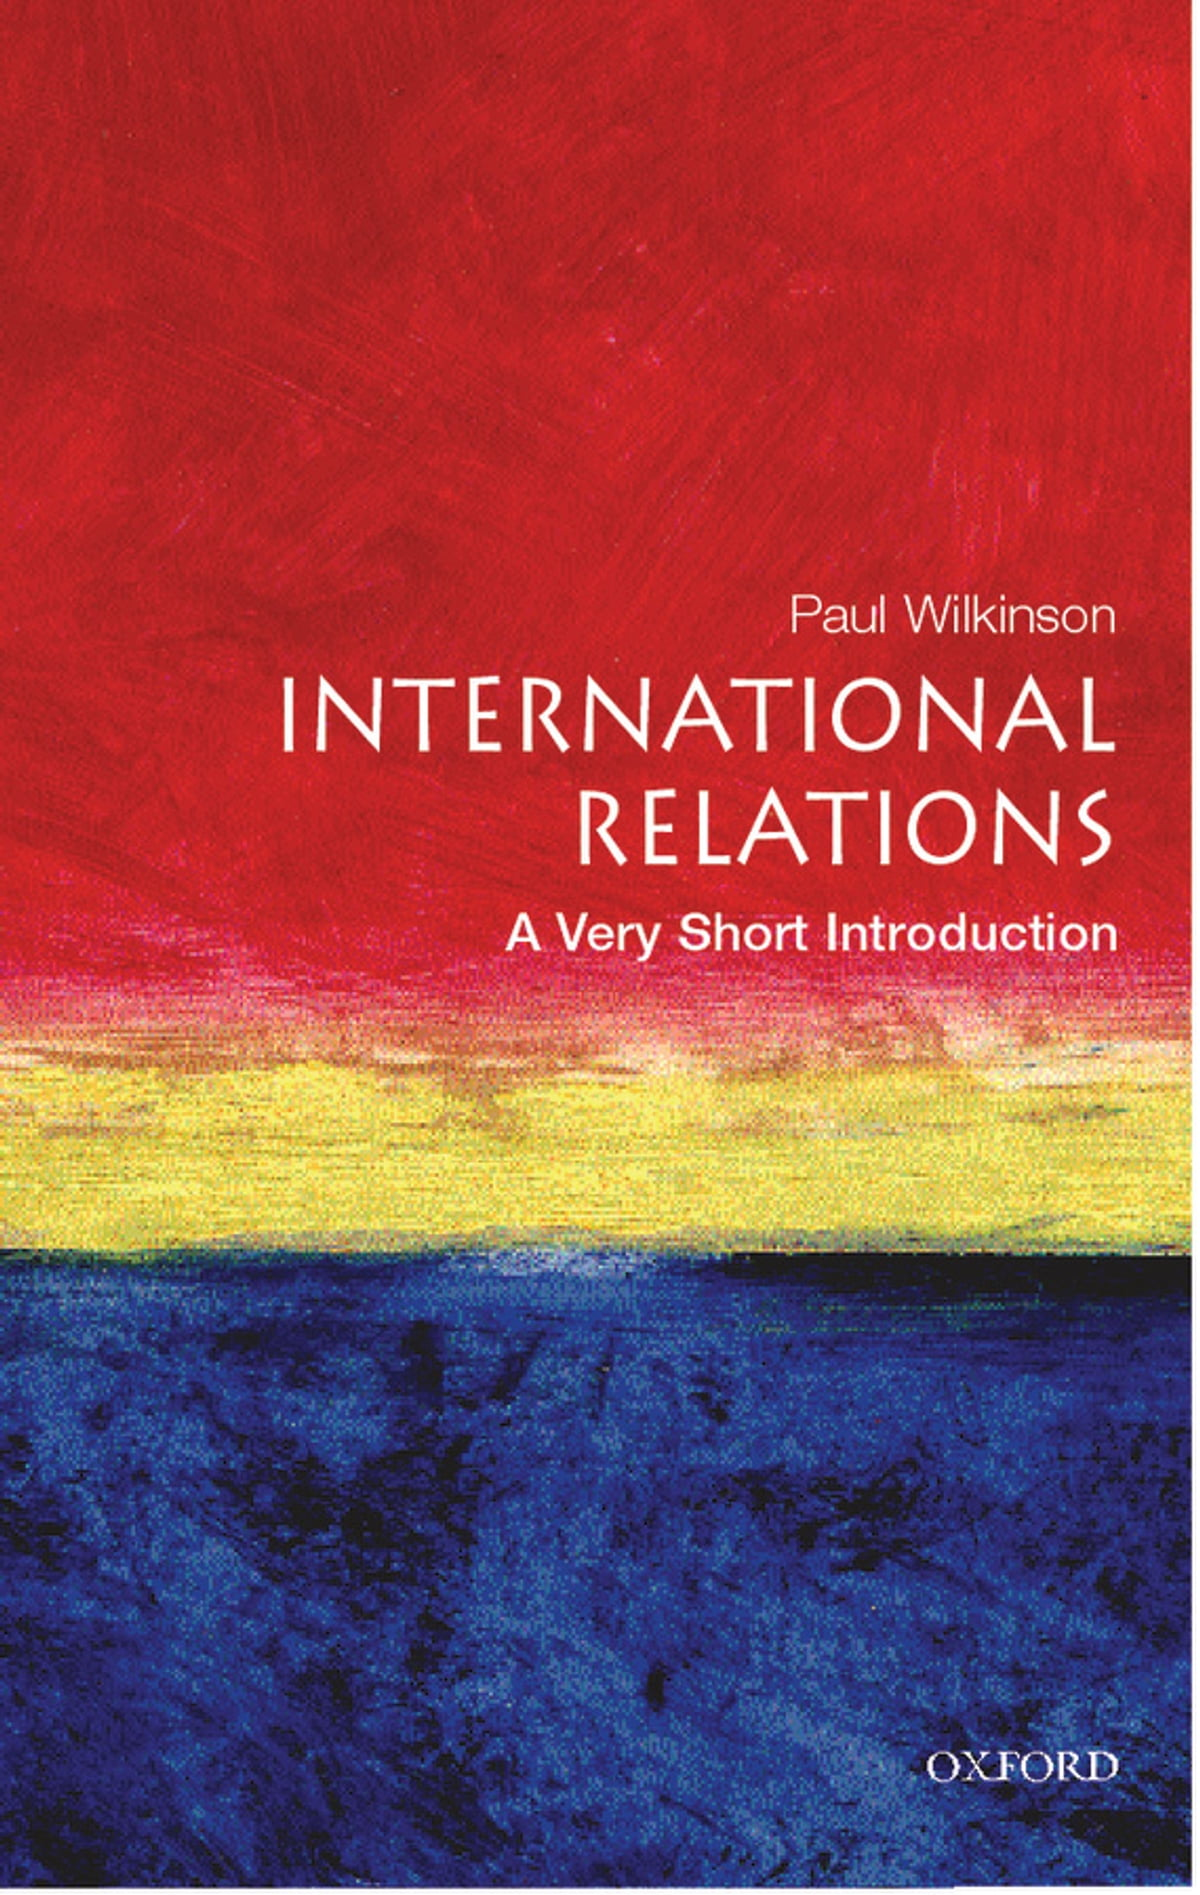 International Relations: A Very Short Introduction ebook by Paul Wilkinson  - Rakuten Kobo